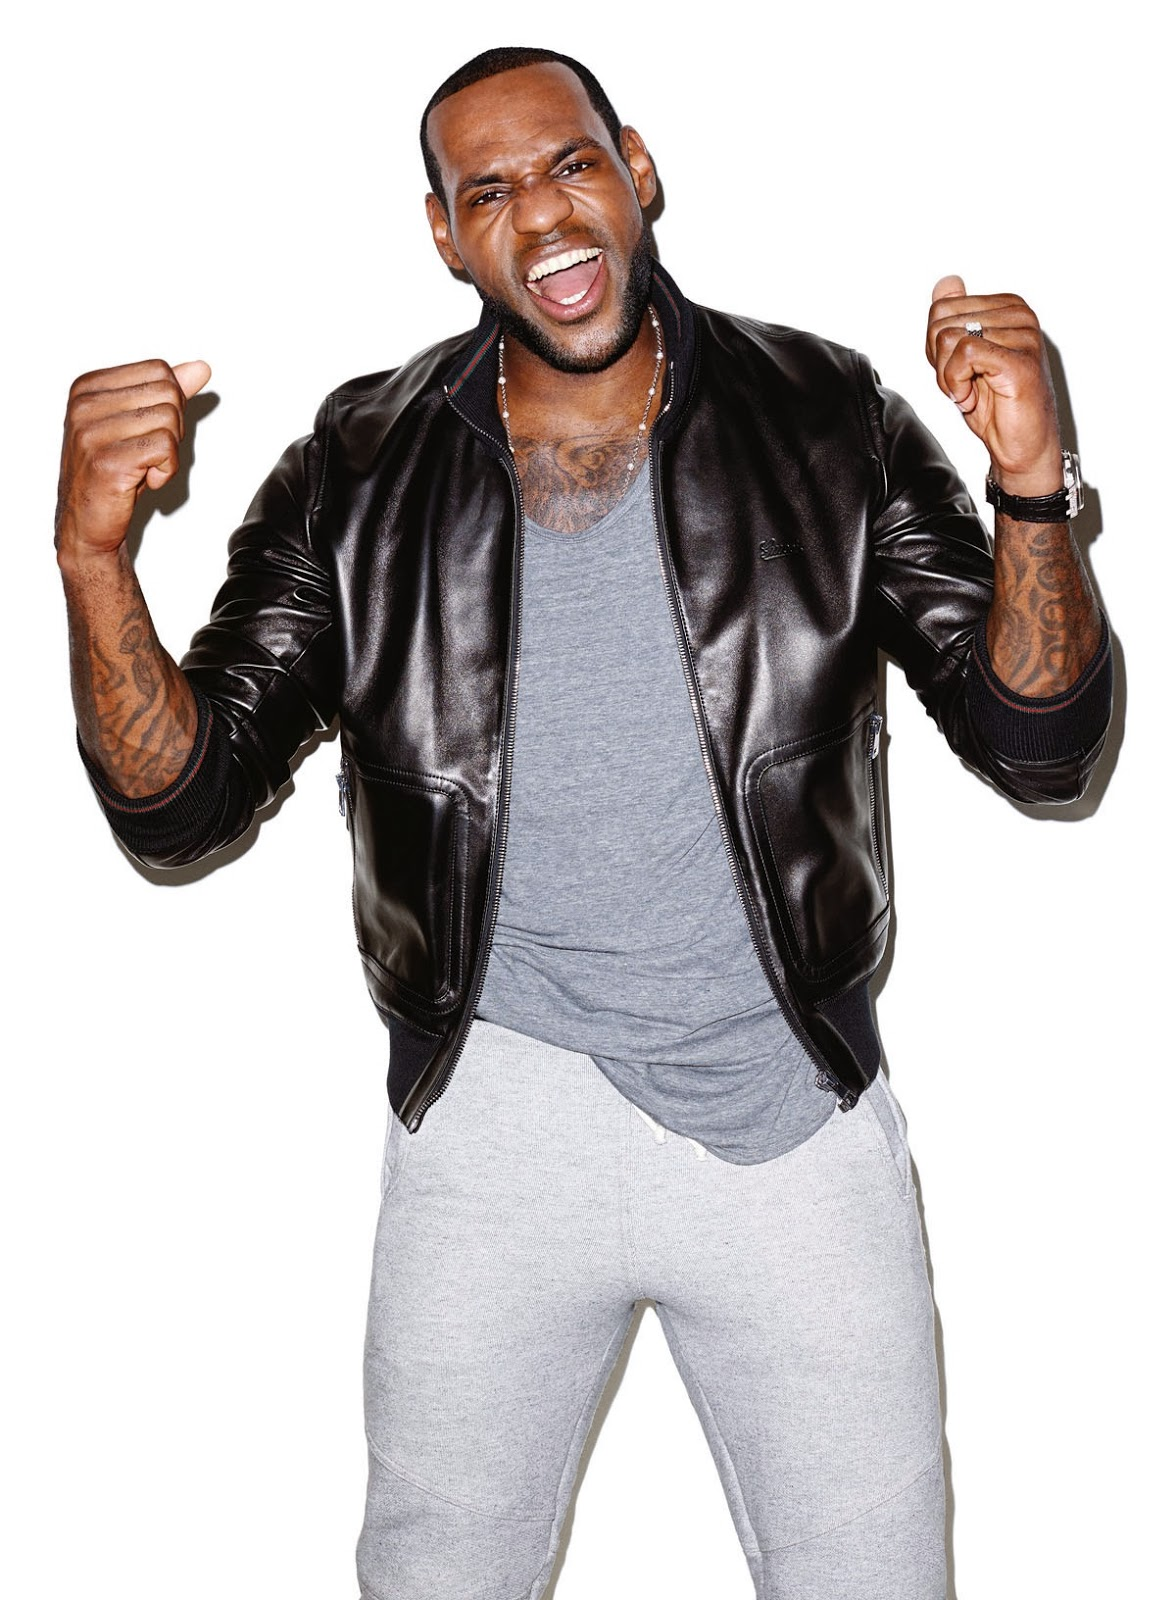 Lebron James Cover Editorial GQ USA March 2014 by Terry Richardson (4)